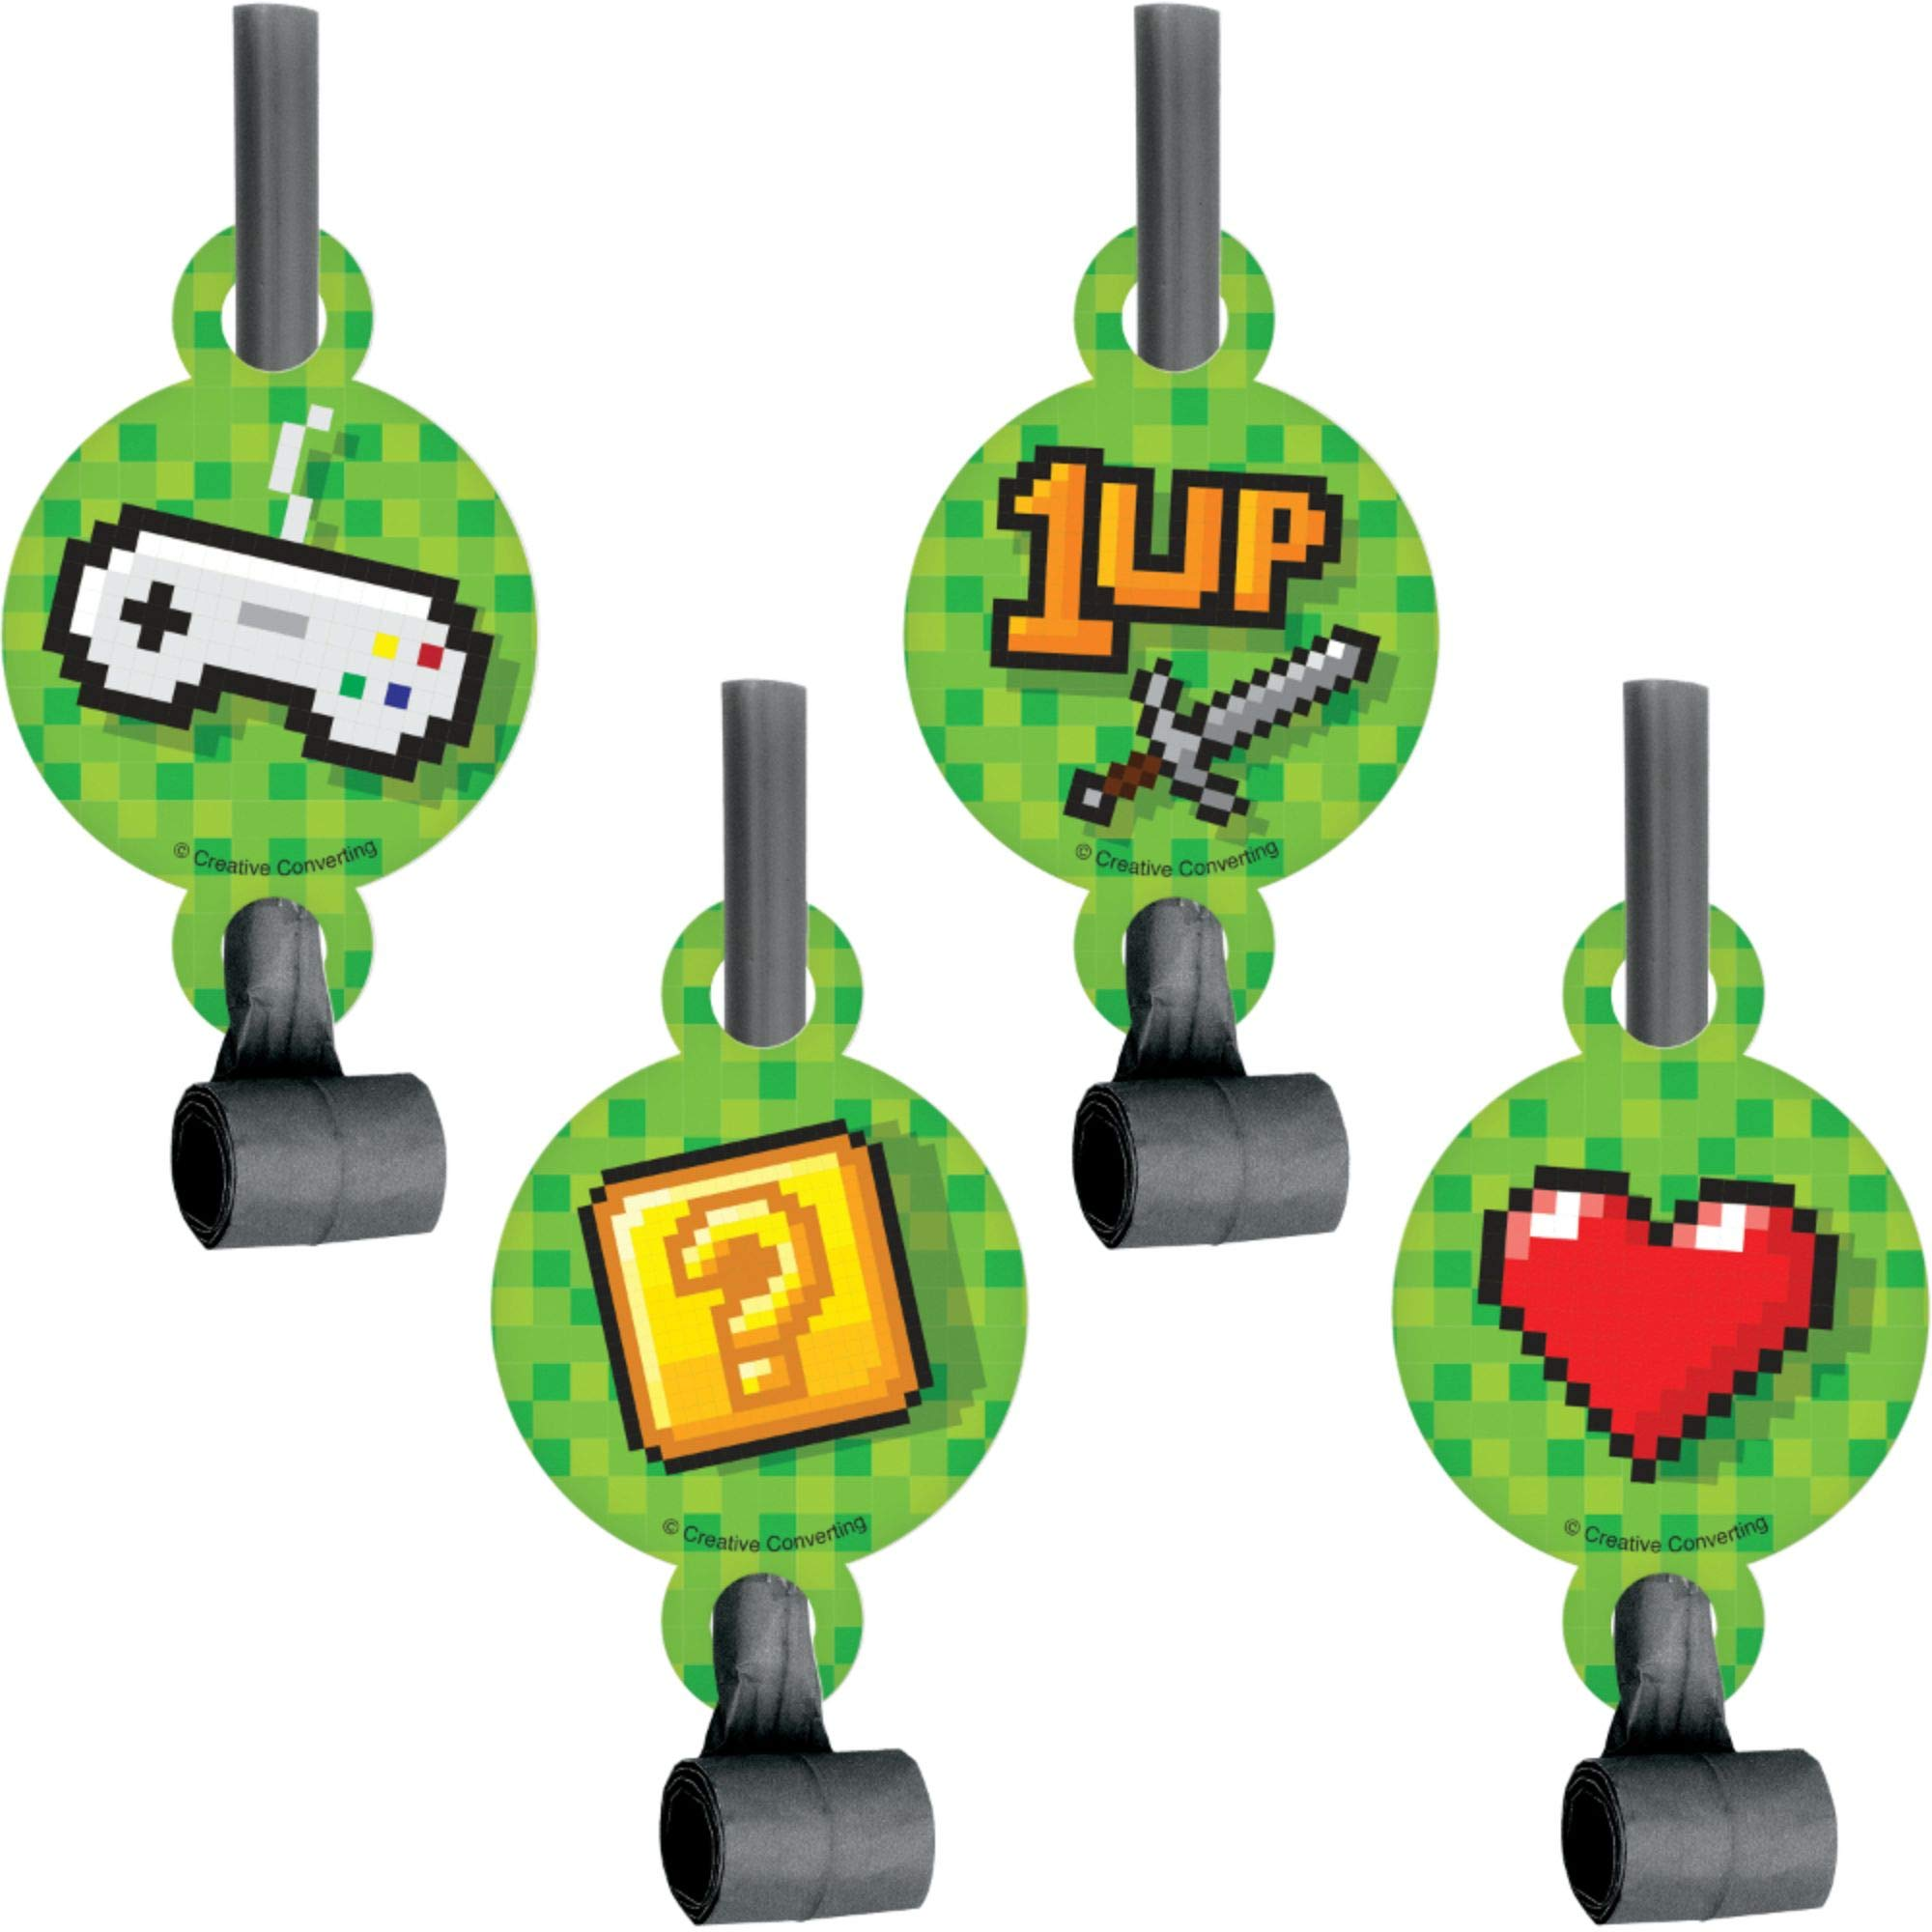 Club Pack of 48 Green and Gray Video Game Themed Blowout Party Noisemakers 5.25'' by Party Central